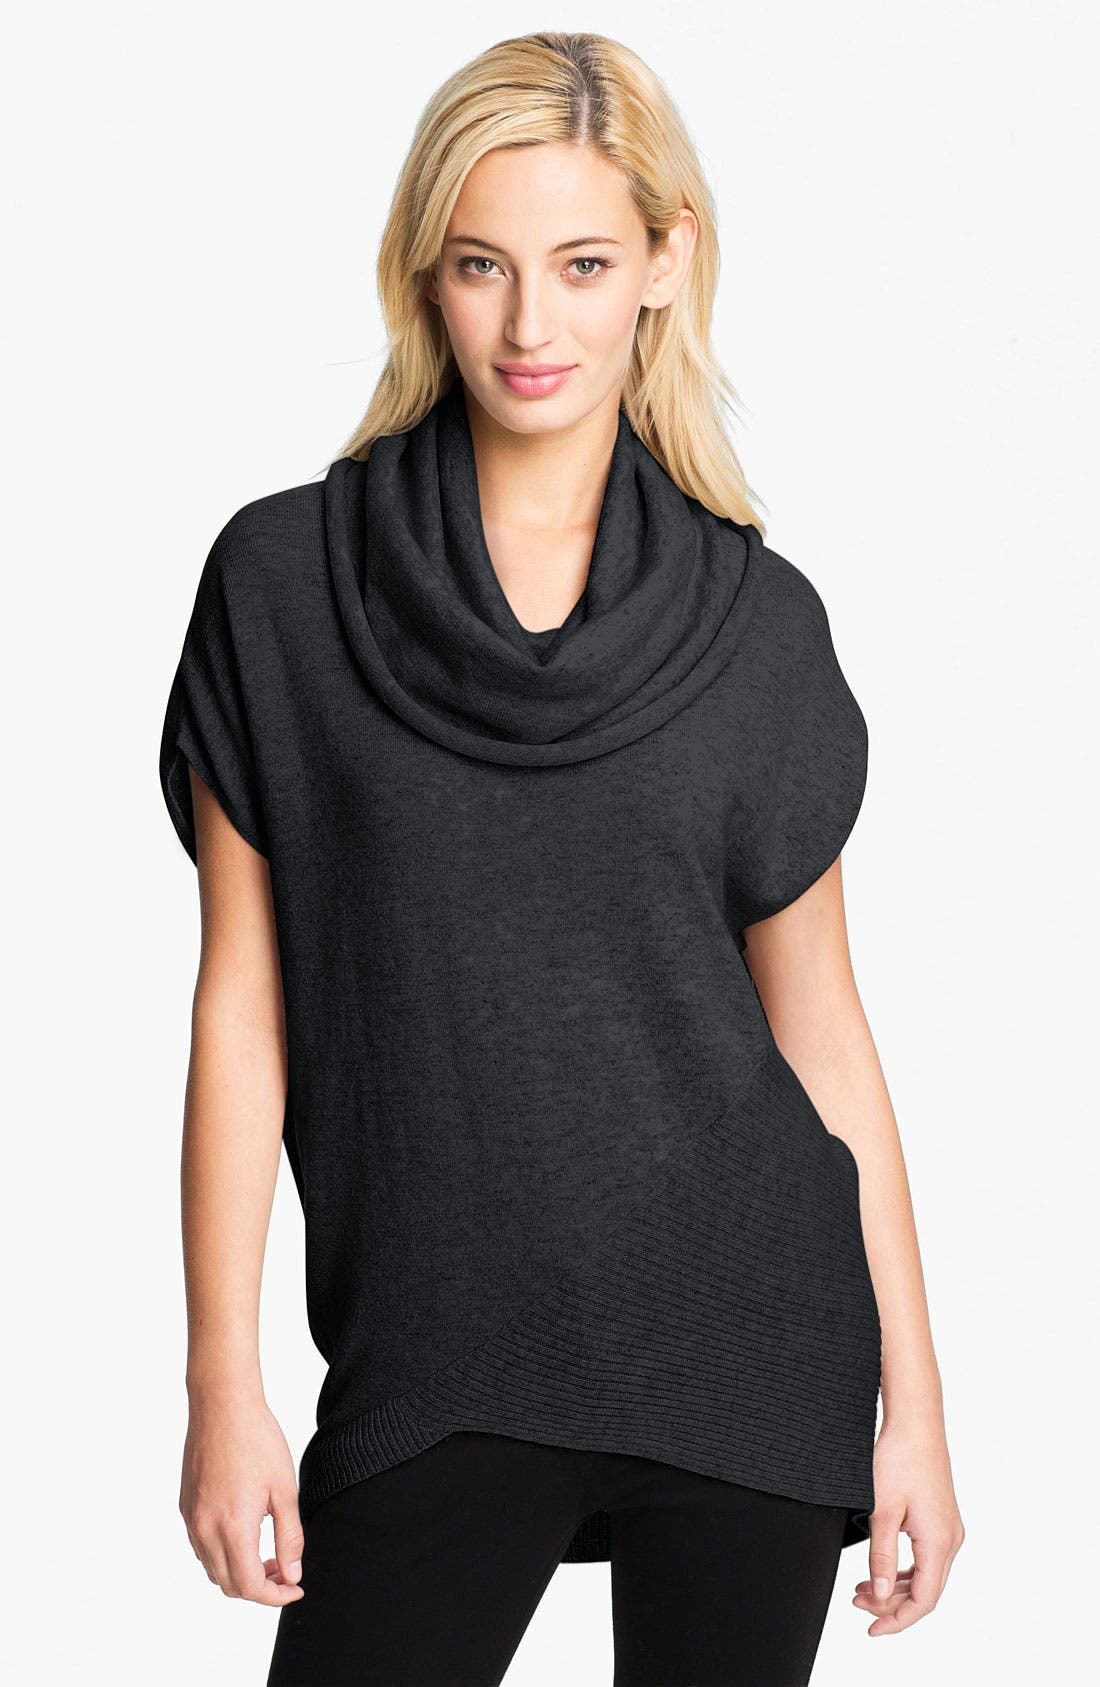 Alternate Image 1 Selected - Christopher Fischer 'Honoria' Cowl Neck Cashmere Sweater (Online Exclusive)